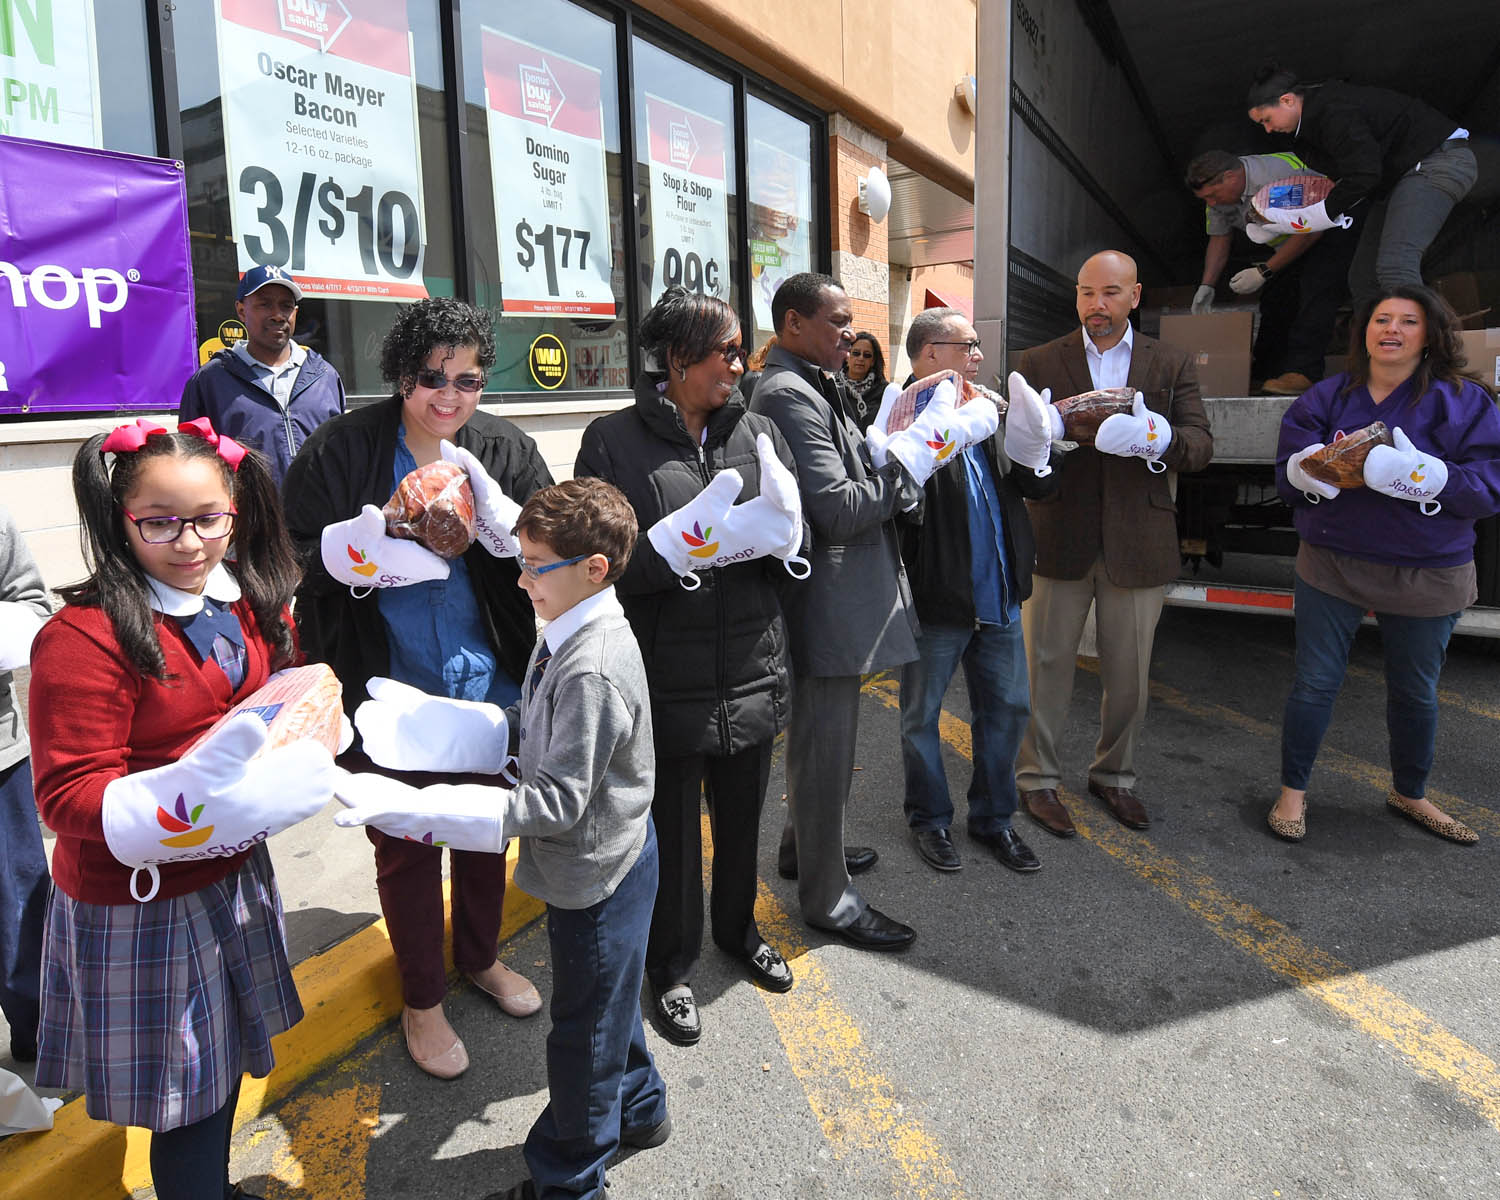 BX Hams-Unload 2 Bronx Borough President Ruben Diaz Jr. (2nd from r.) and Cindy Carrasquilla of Stop & Shop NY Metro (far r.) were joined by representatives from local social service agencies and St. Thomas Aquinas School students to help unload hams in the parking lot of the E. 174th supermarket in the Bronx on April 13. The supermarket donated 1,000 Easter hams to five social service agencies that provide assistance to Bronxites in need. (Credit: Stop & Shop)